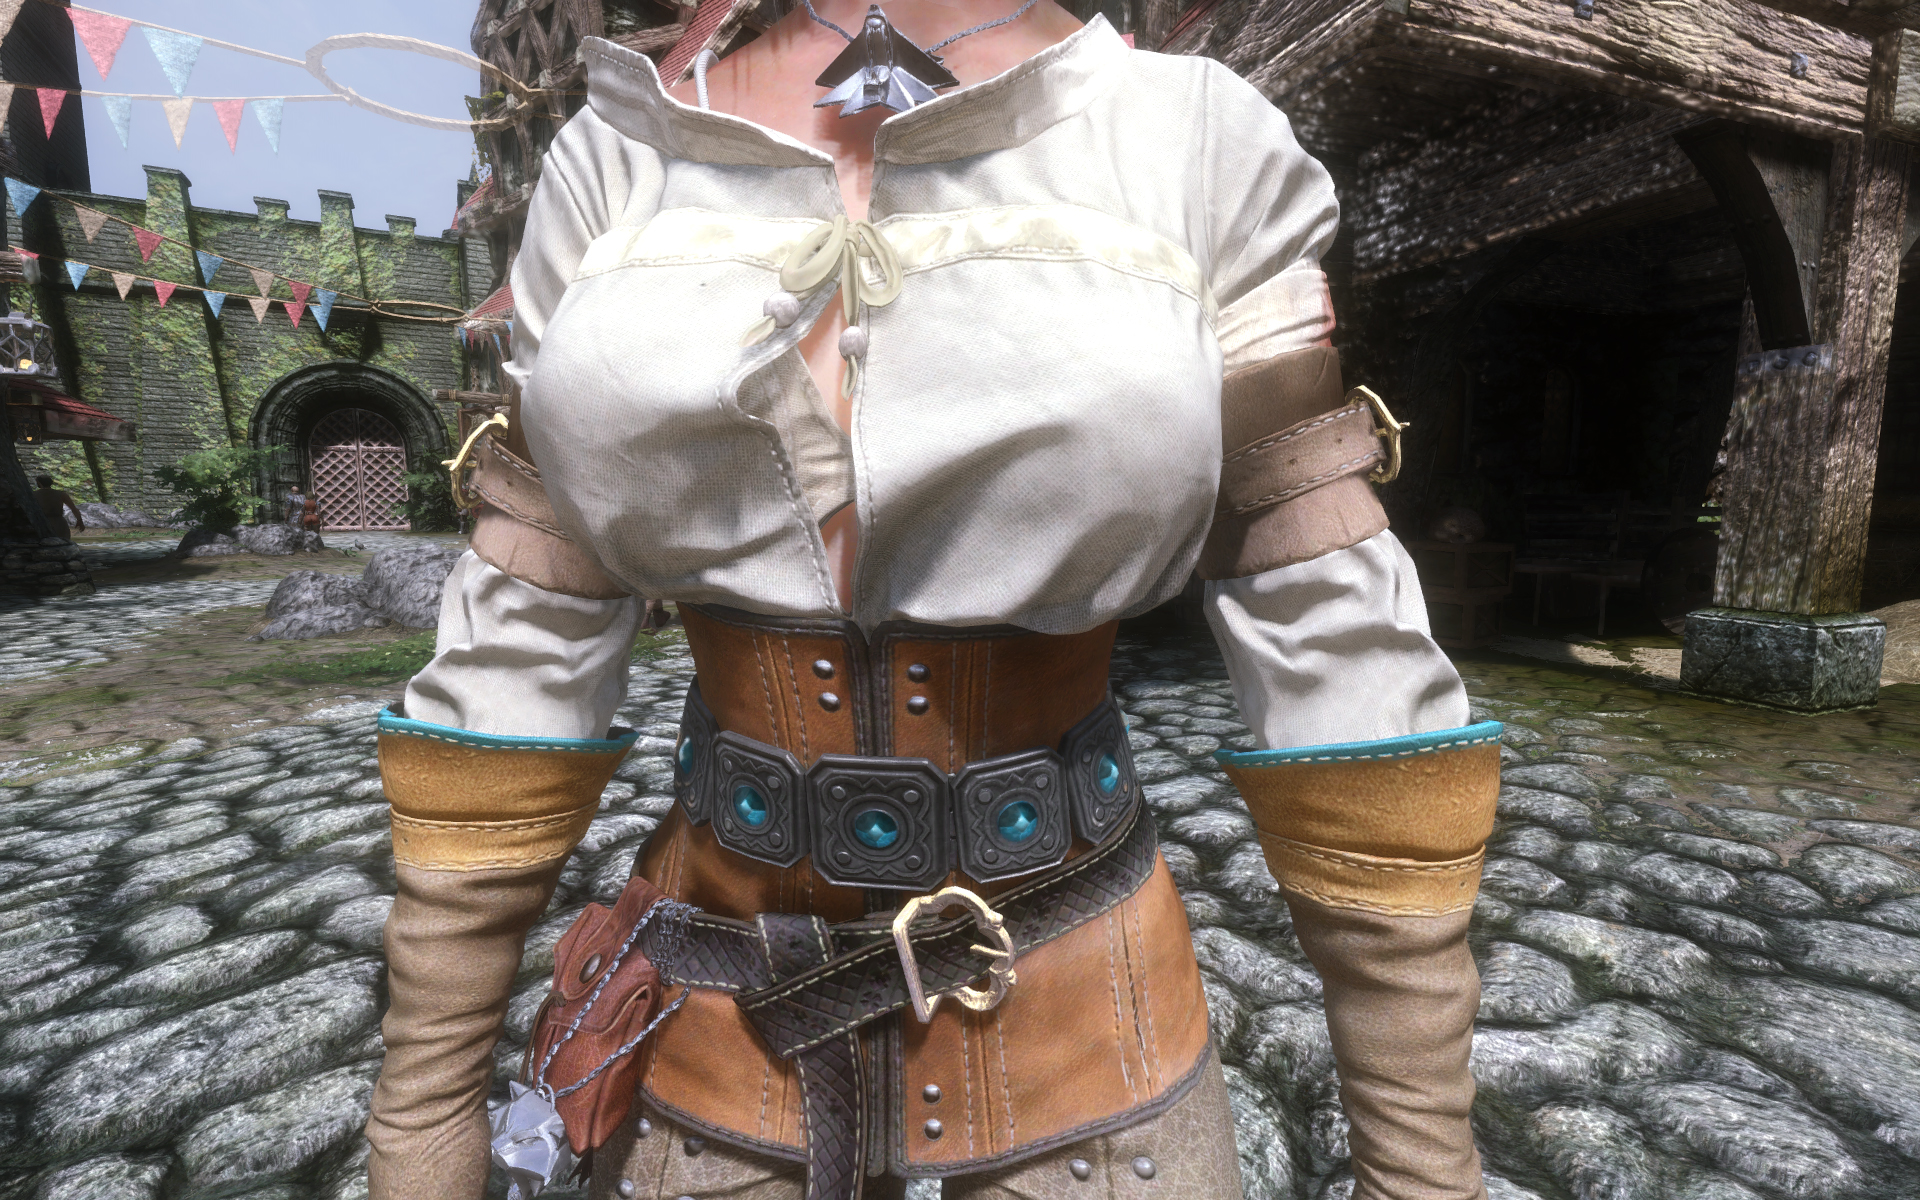 Ciri (Witcher 3) Armor HD Retexture at Skyrim Nexus - mods and ...: www.nexusmods.com/skyrim/mods/69078